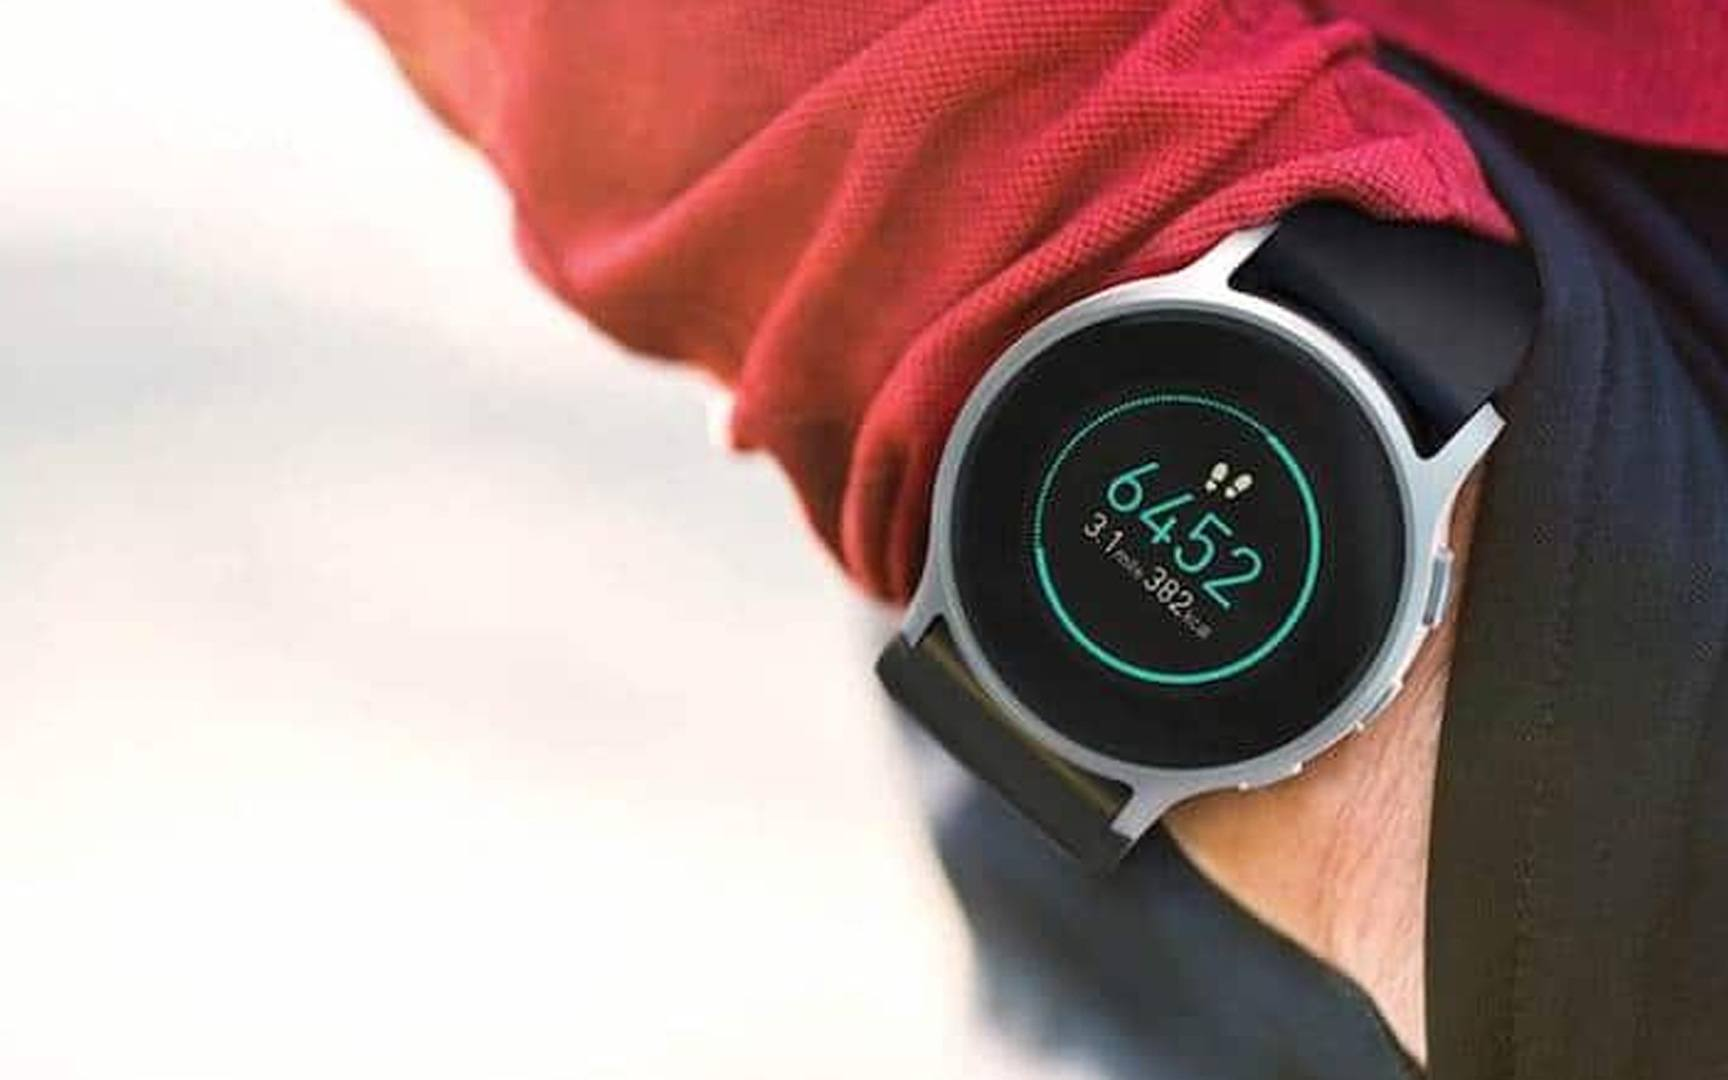 Omron HeartGuide Blood Pressure Smartwatch Revealed at CES 2018